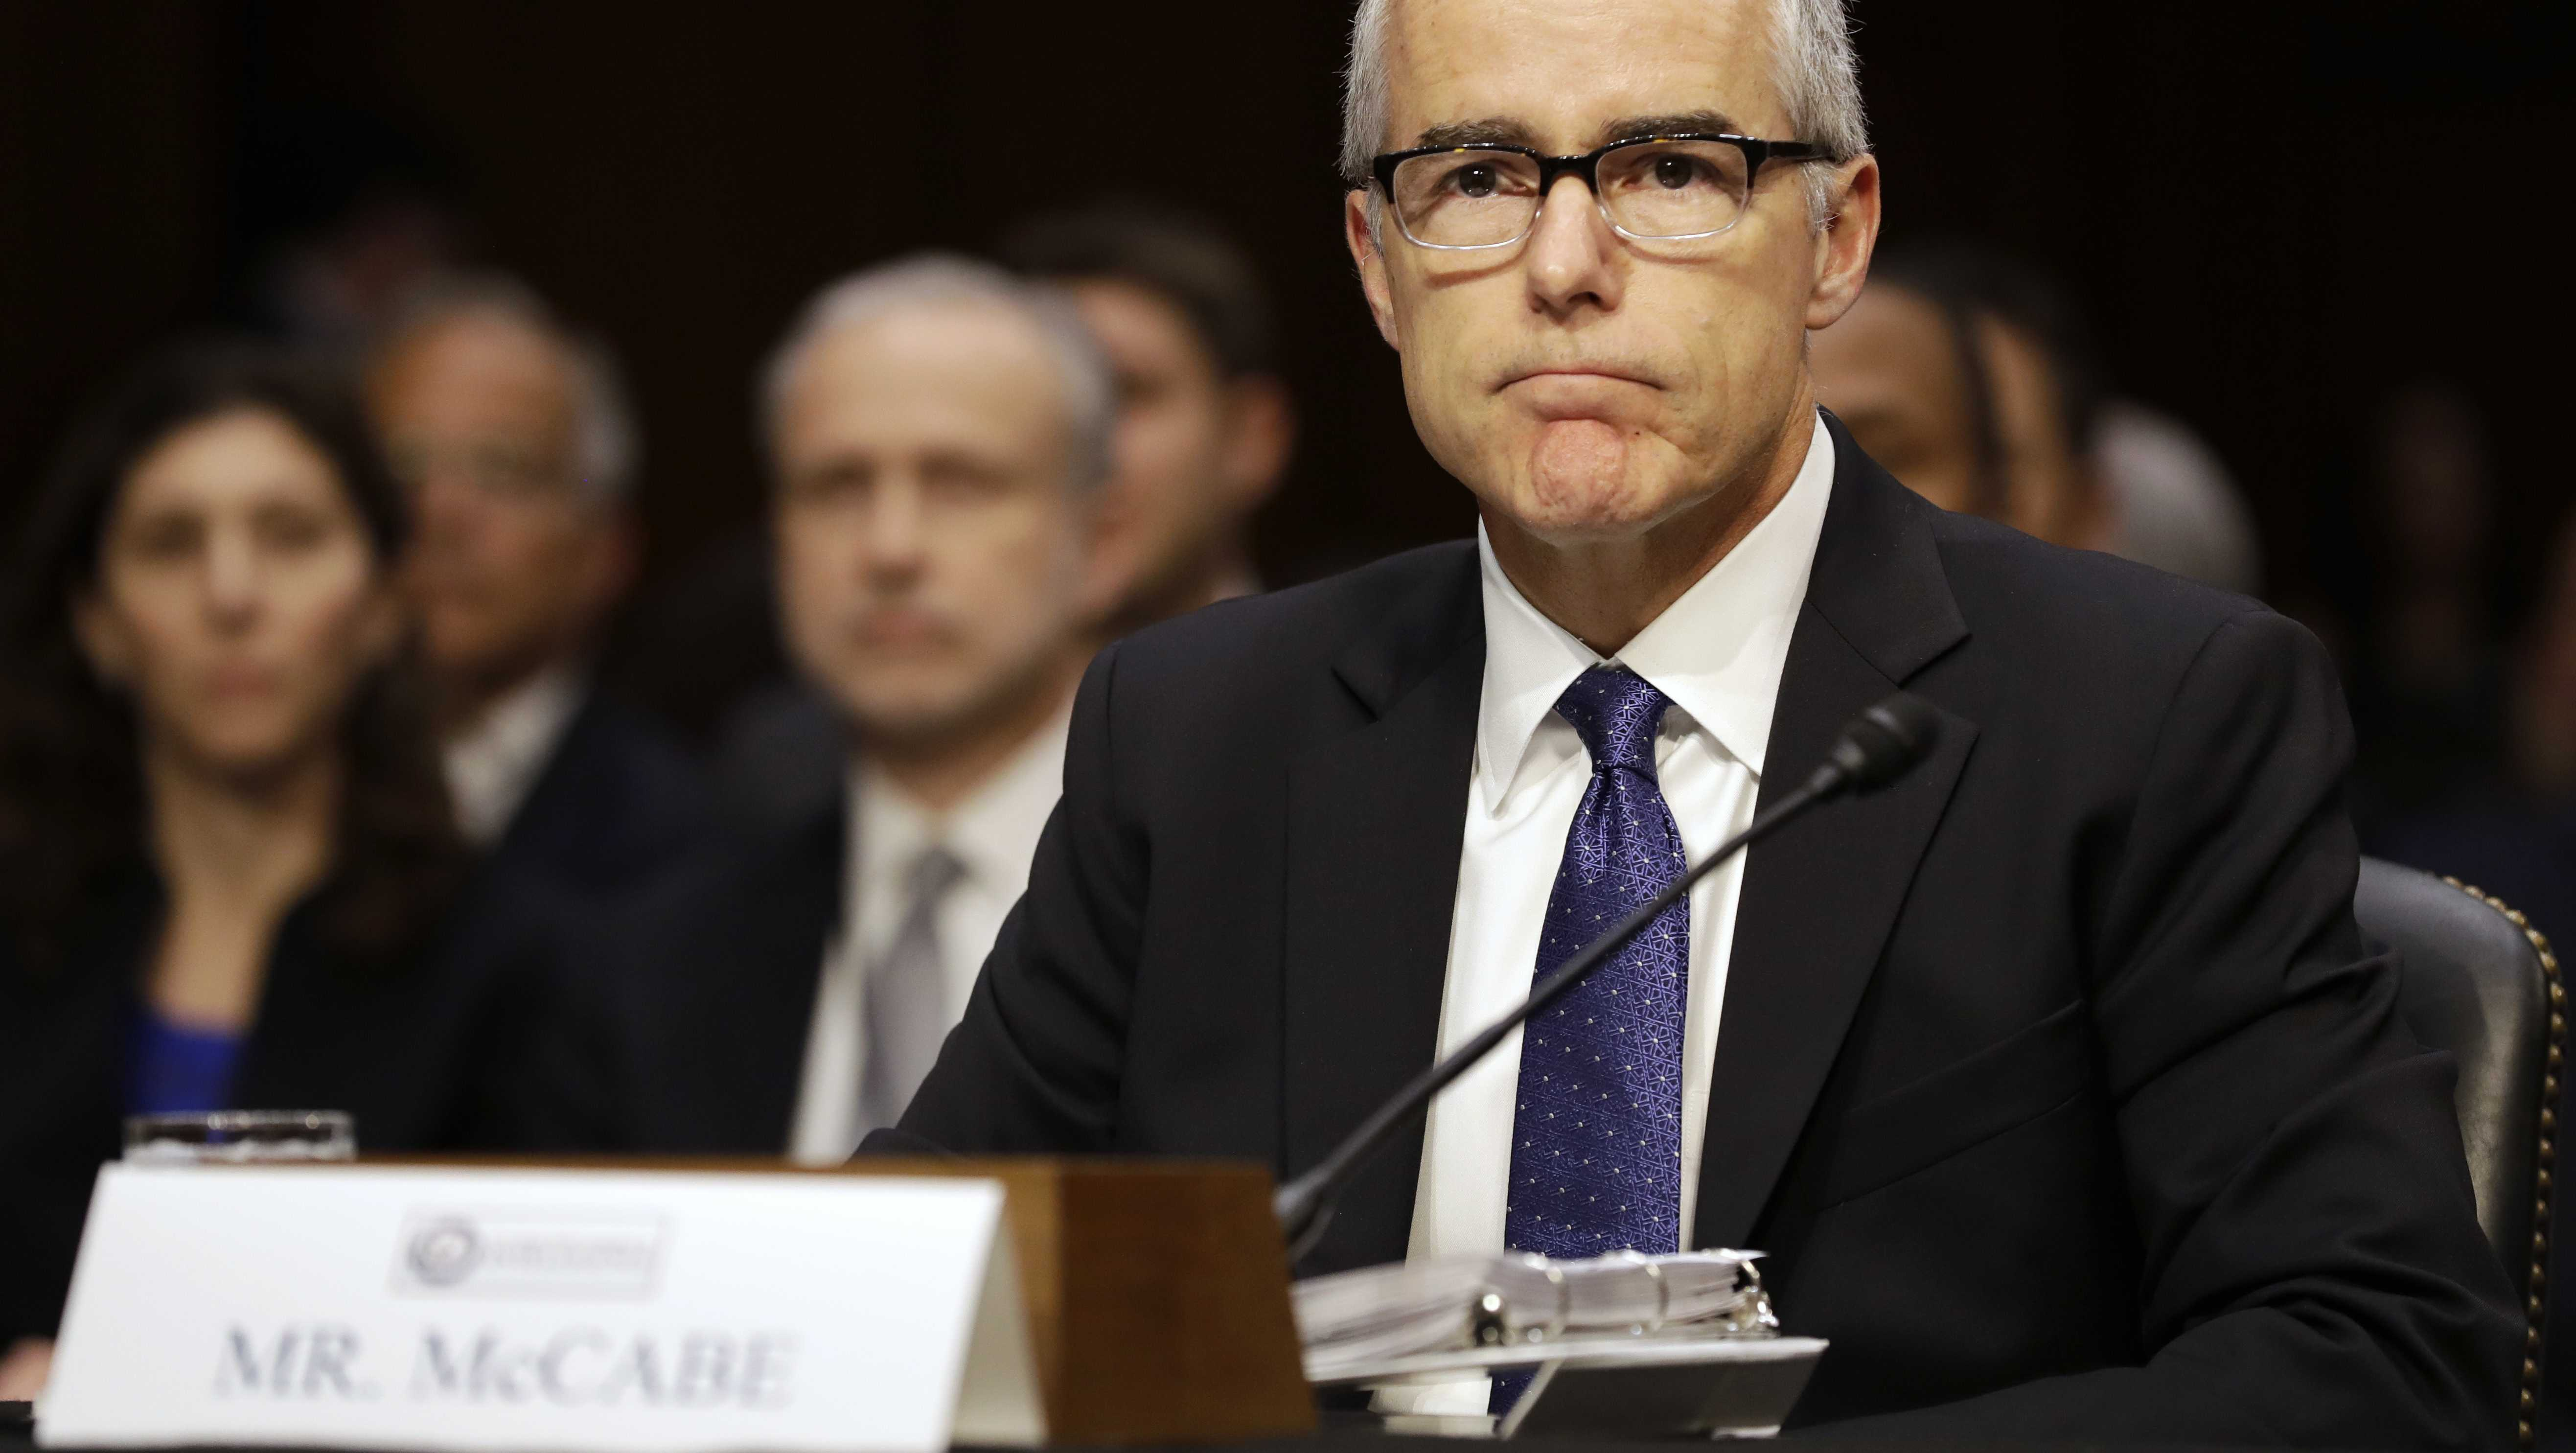 Acting FBI Director Andrew McCabe listens on Capitol Hill in Washington, Thursday, May 11, 2017, while testifying before a Senate Intelligence Committee hearing on major threats facing the U.S.